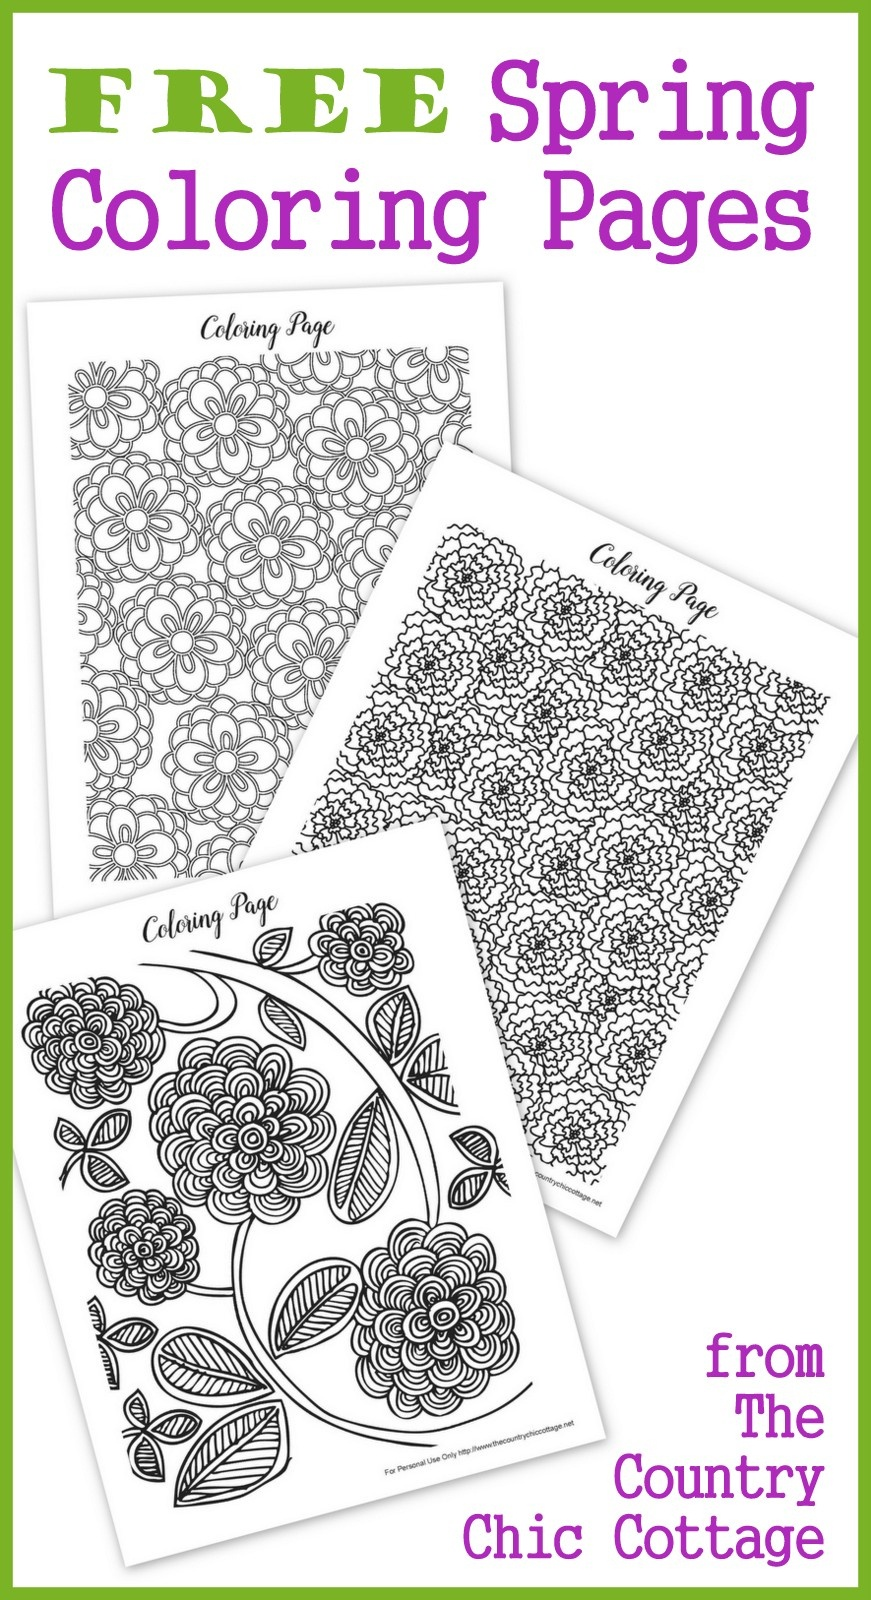 Free Spring Coloring Pages For Adults - The Country Chic Cottage - Free Printable Spring Coloring Pages For Adults